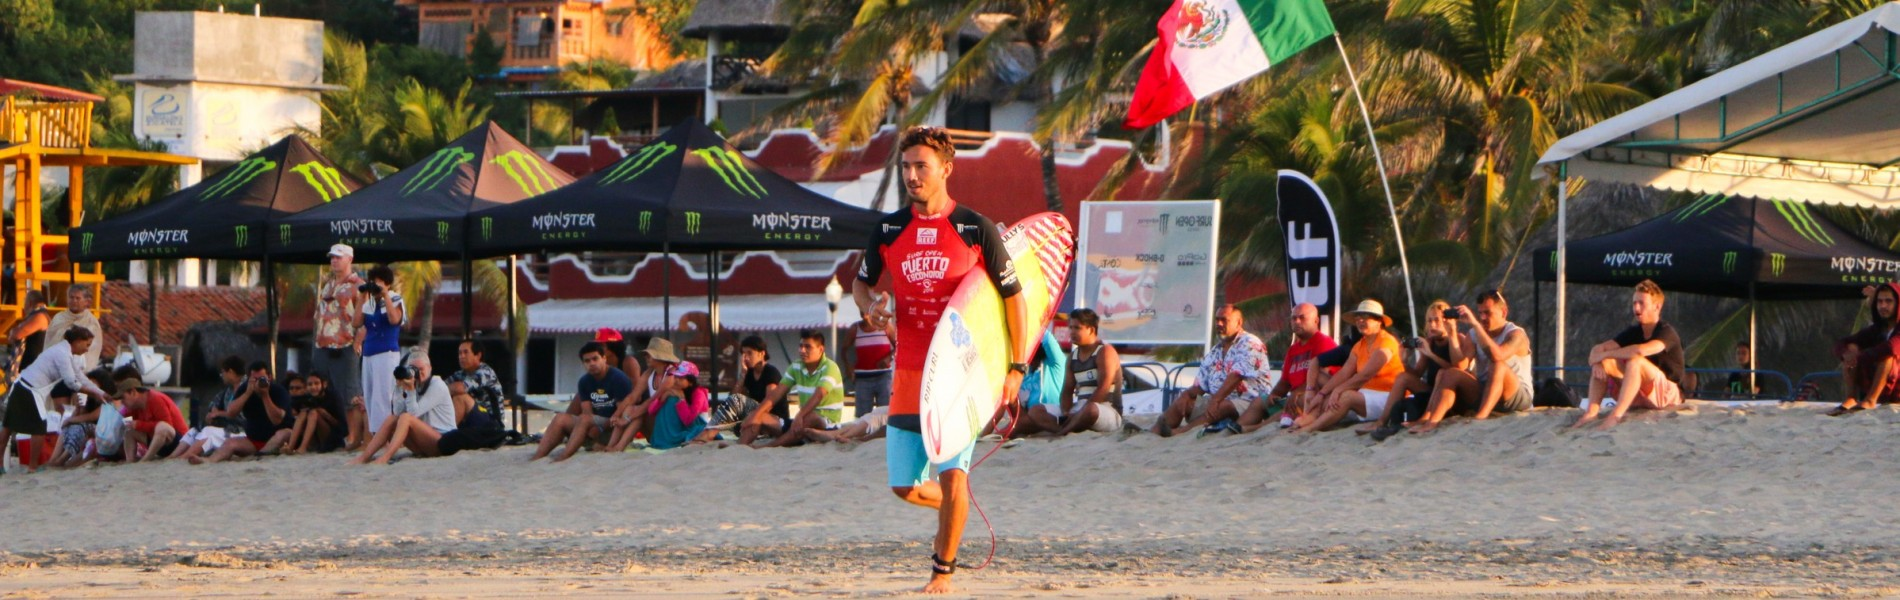 Surf Open League Puerto Esconido, attended by Jose Manuel Trujillo, Angelo Lozano and Jhony Corzo who finished in 3rd place.